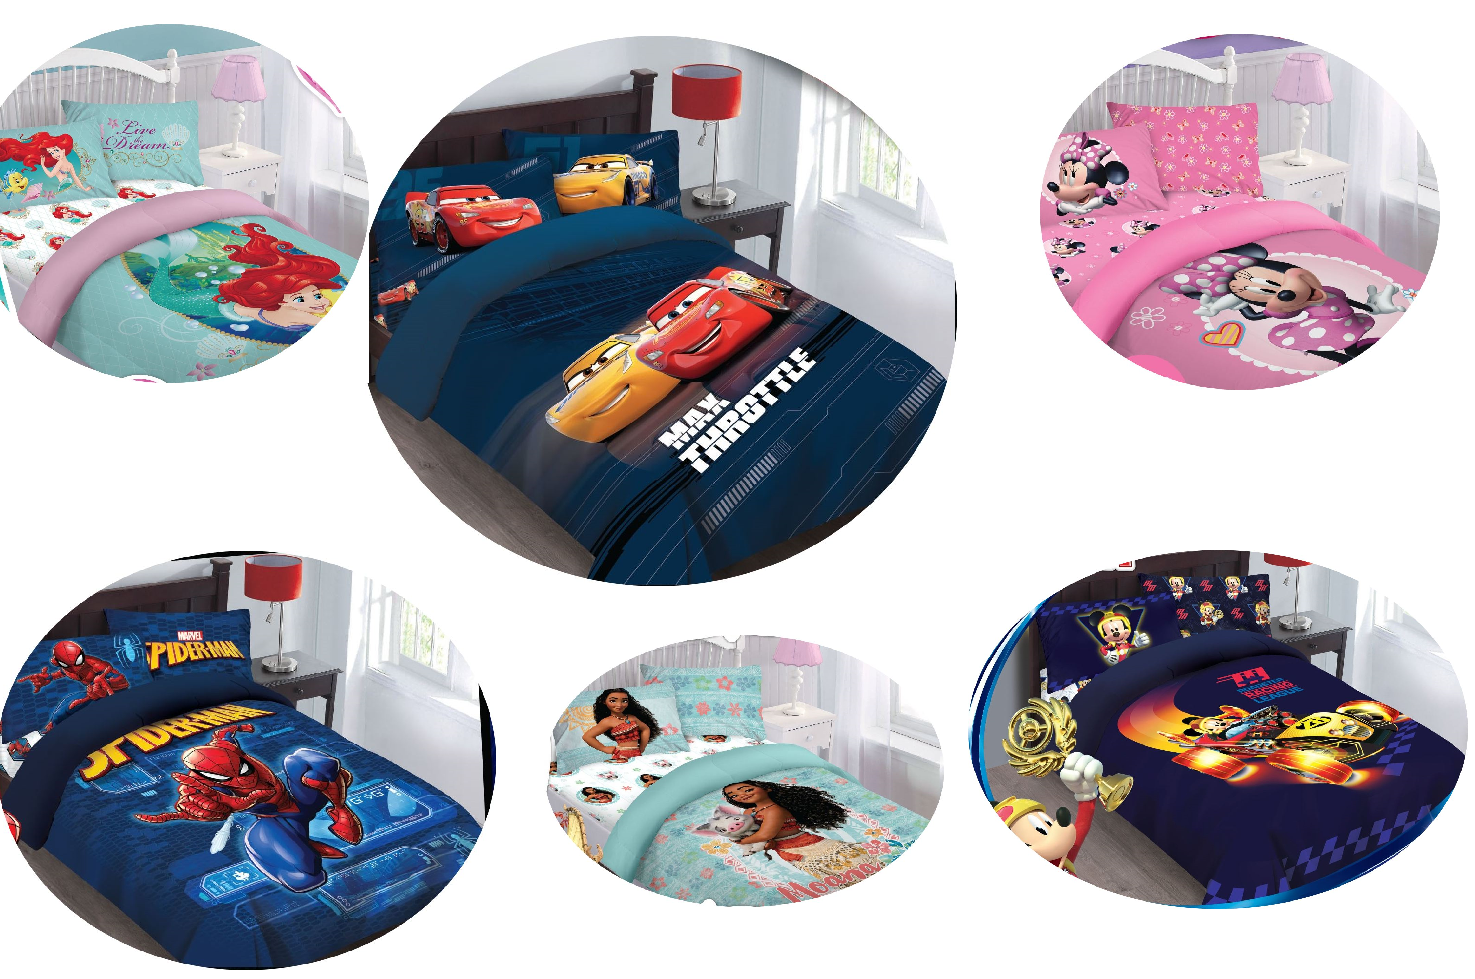 Stupendous Disney Favorites Bed In A Bag Comforter Bed Set With Fitted Sheet Kids Teens Ibusinesslaw Wood Chair Design Ideas Ibusinesslaworg